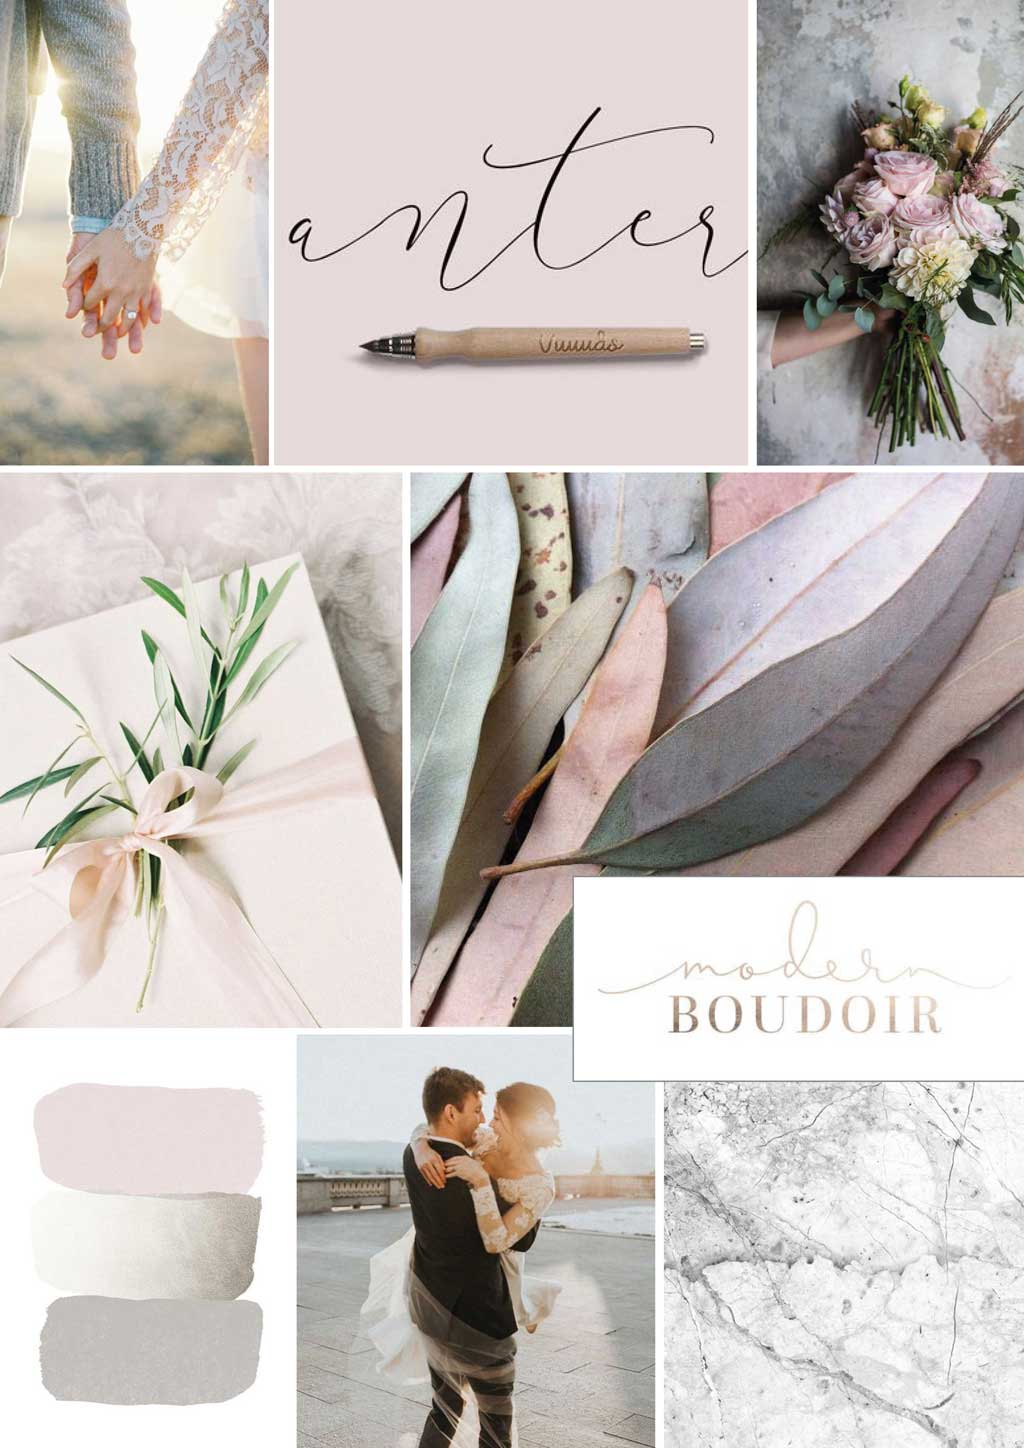 mood and vision board for new branding for photographer Anna Mardo